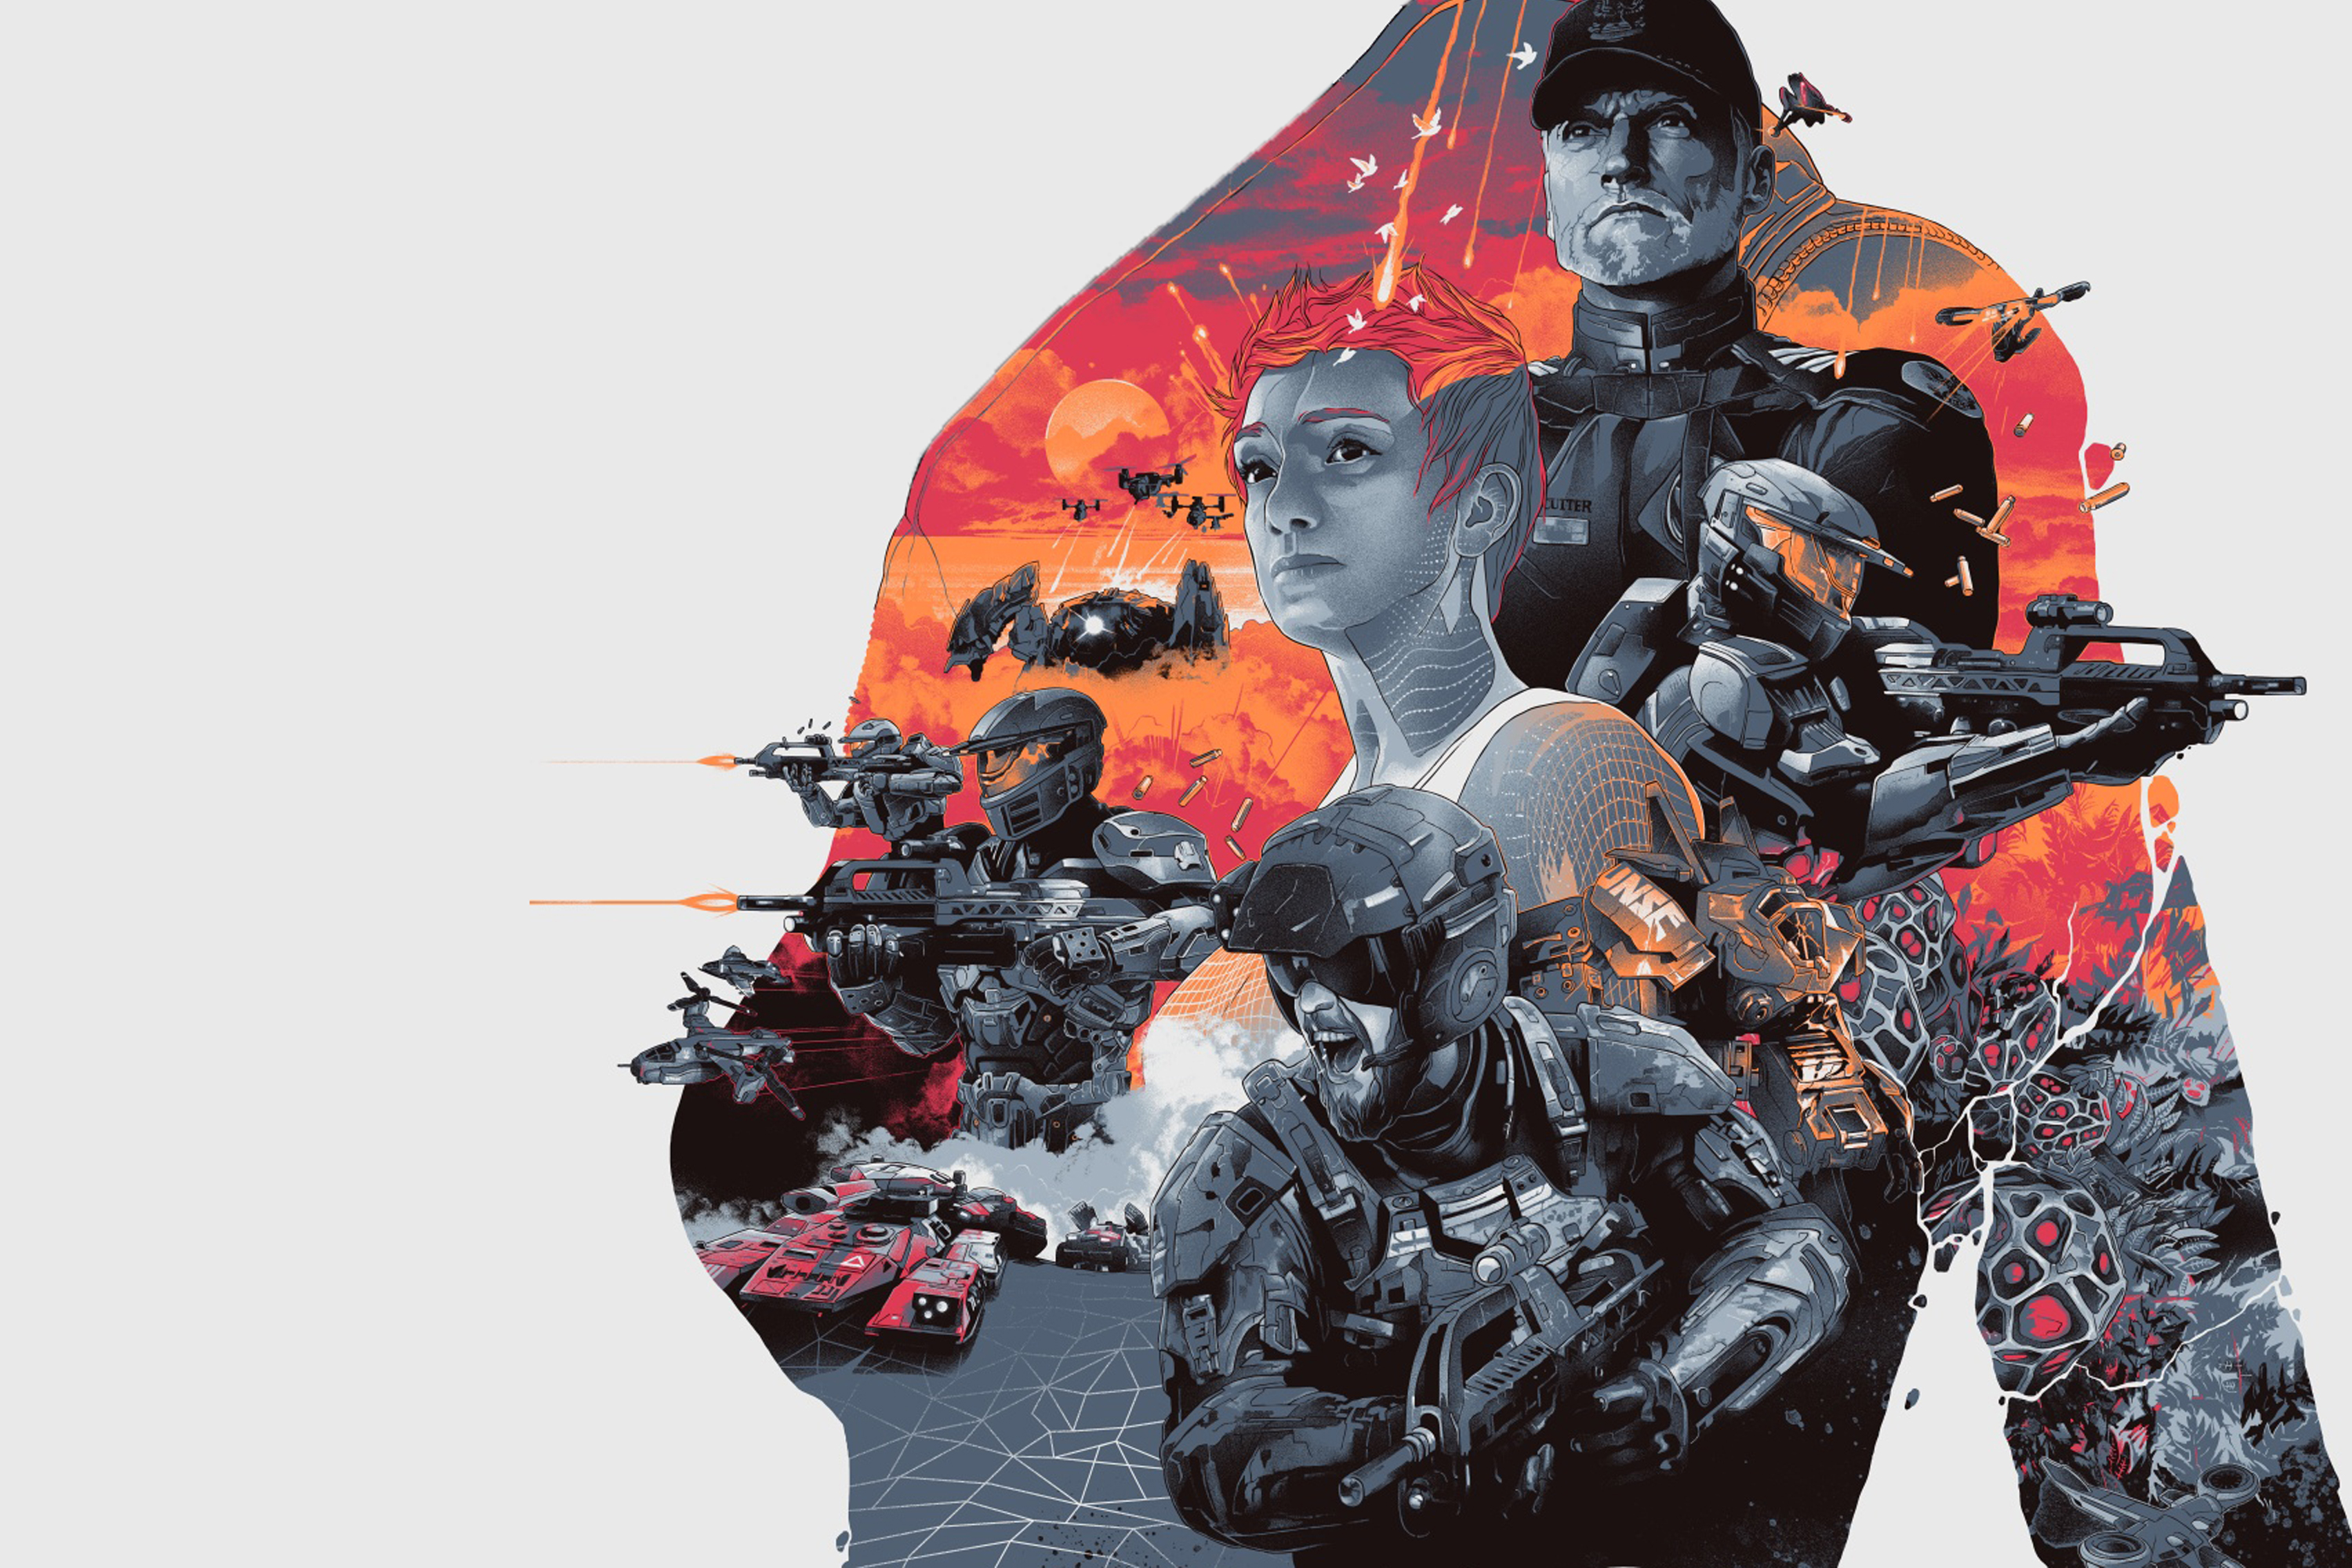 Halo Wars 2 Wallpaper: Halo Wars 2 Leaders Wallpaper Image